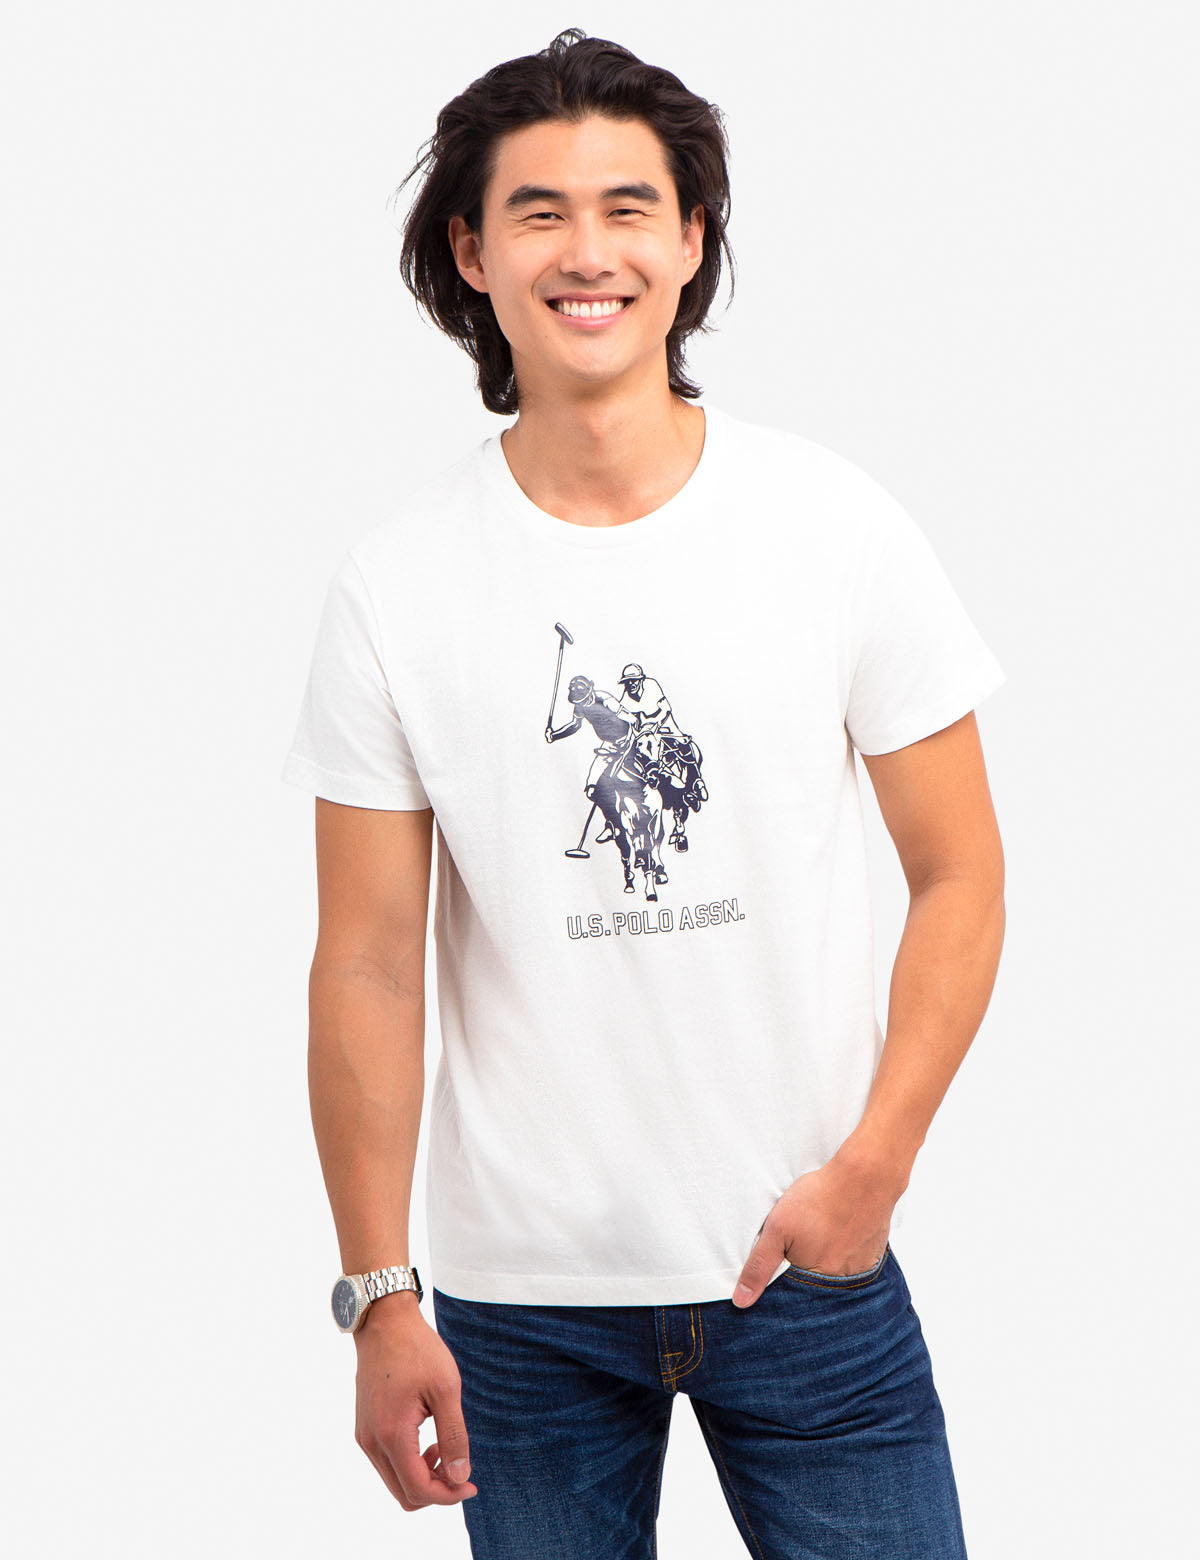 U.S. POLO ASSN. LOGO GRAPHIC T-SHIRT - U.S. Polo Assn.